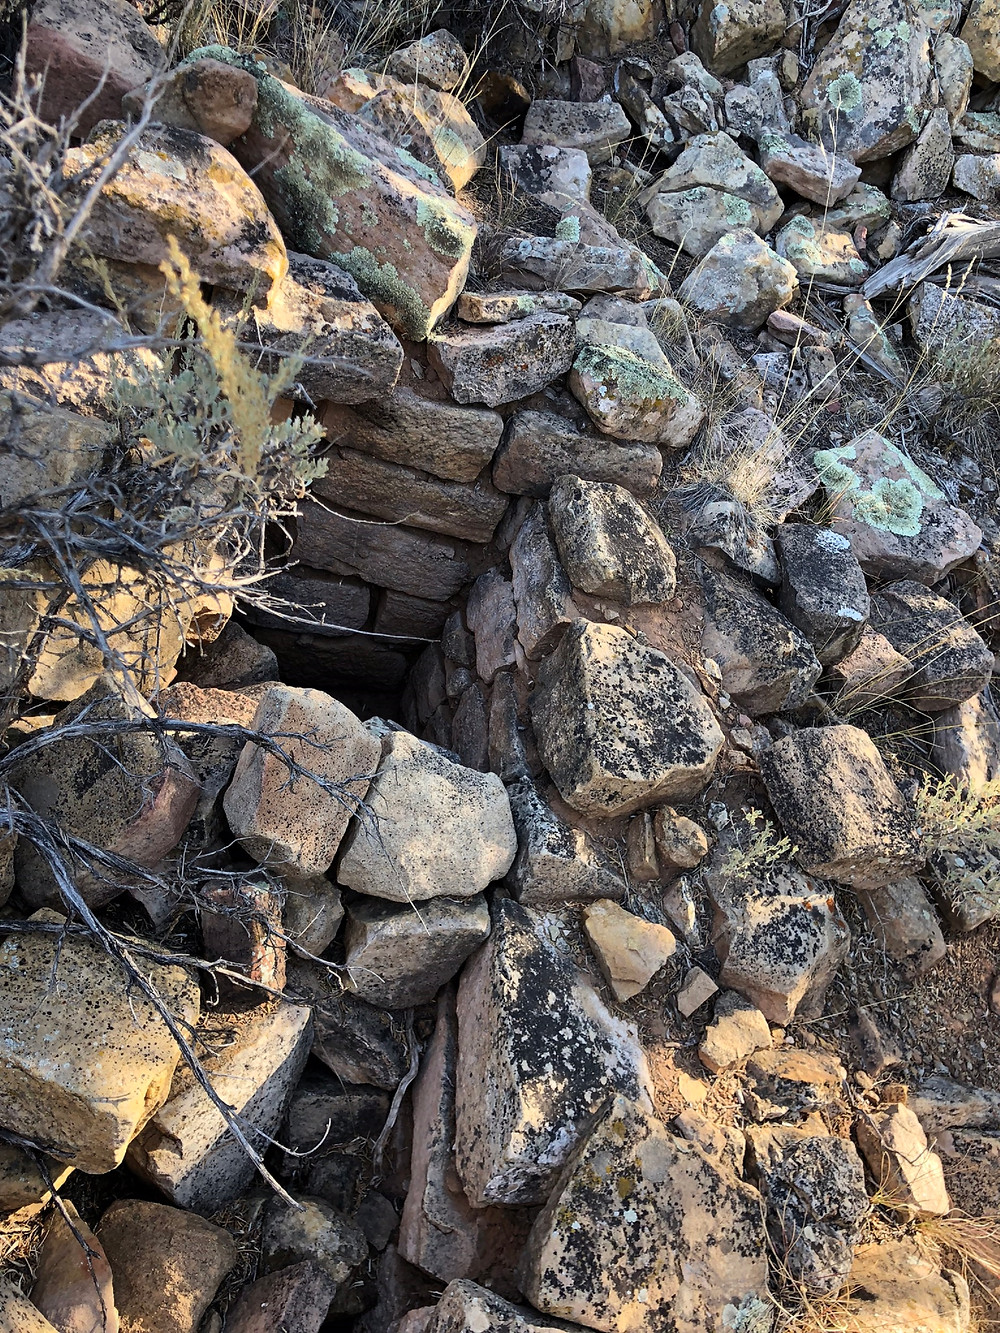 Stone wall at Sand Canyon Pueblo ruins in Canyons of the Ancients National Monument